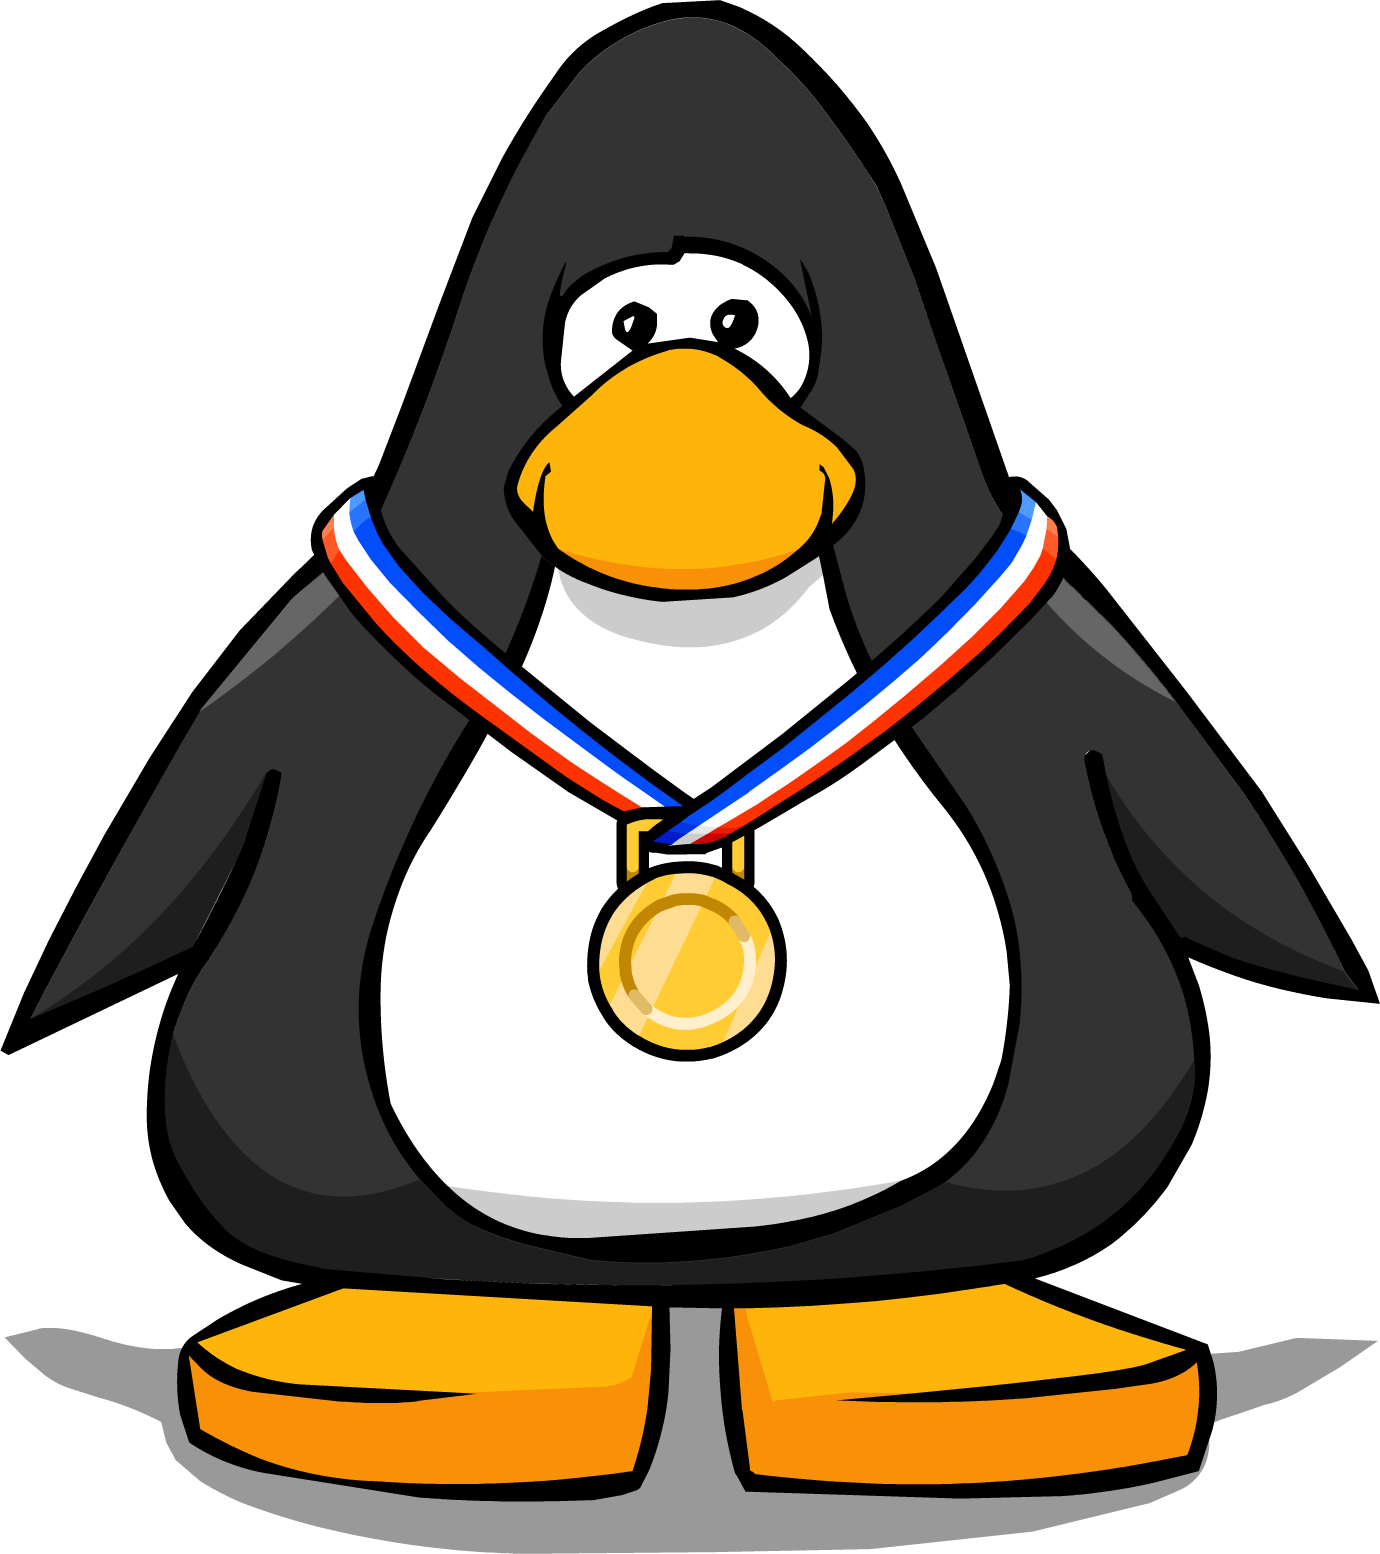 Overwatch gold medal png. Image from a player